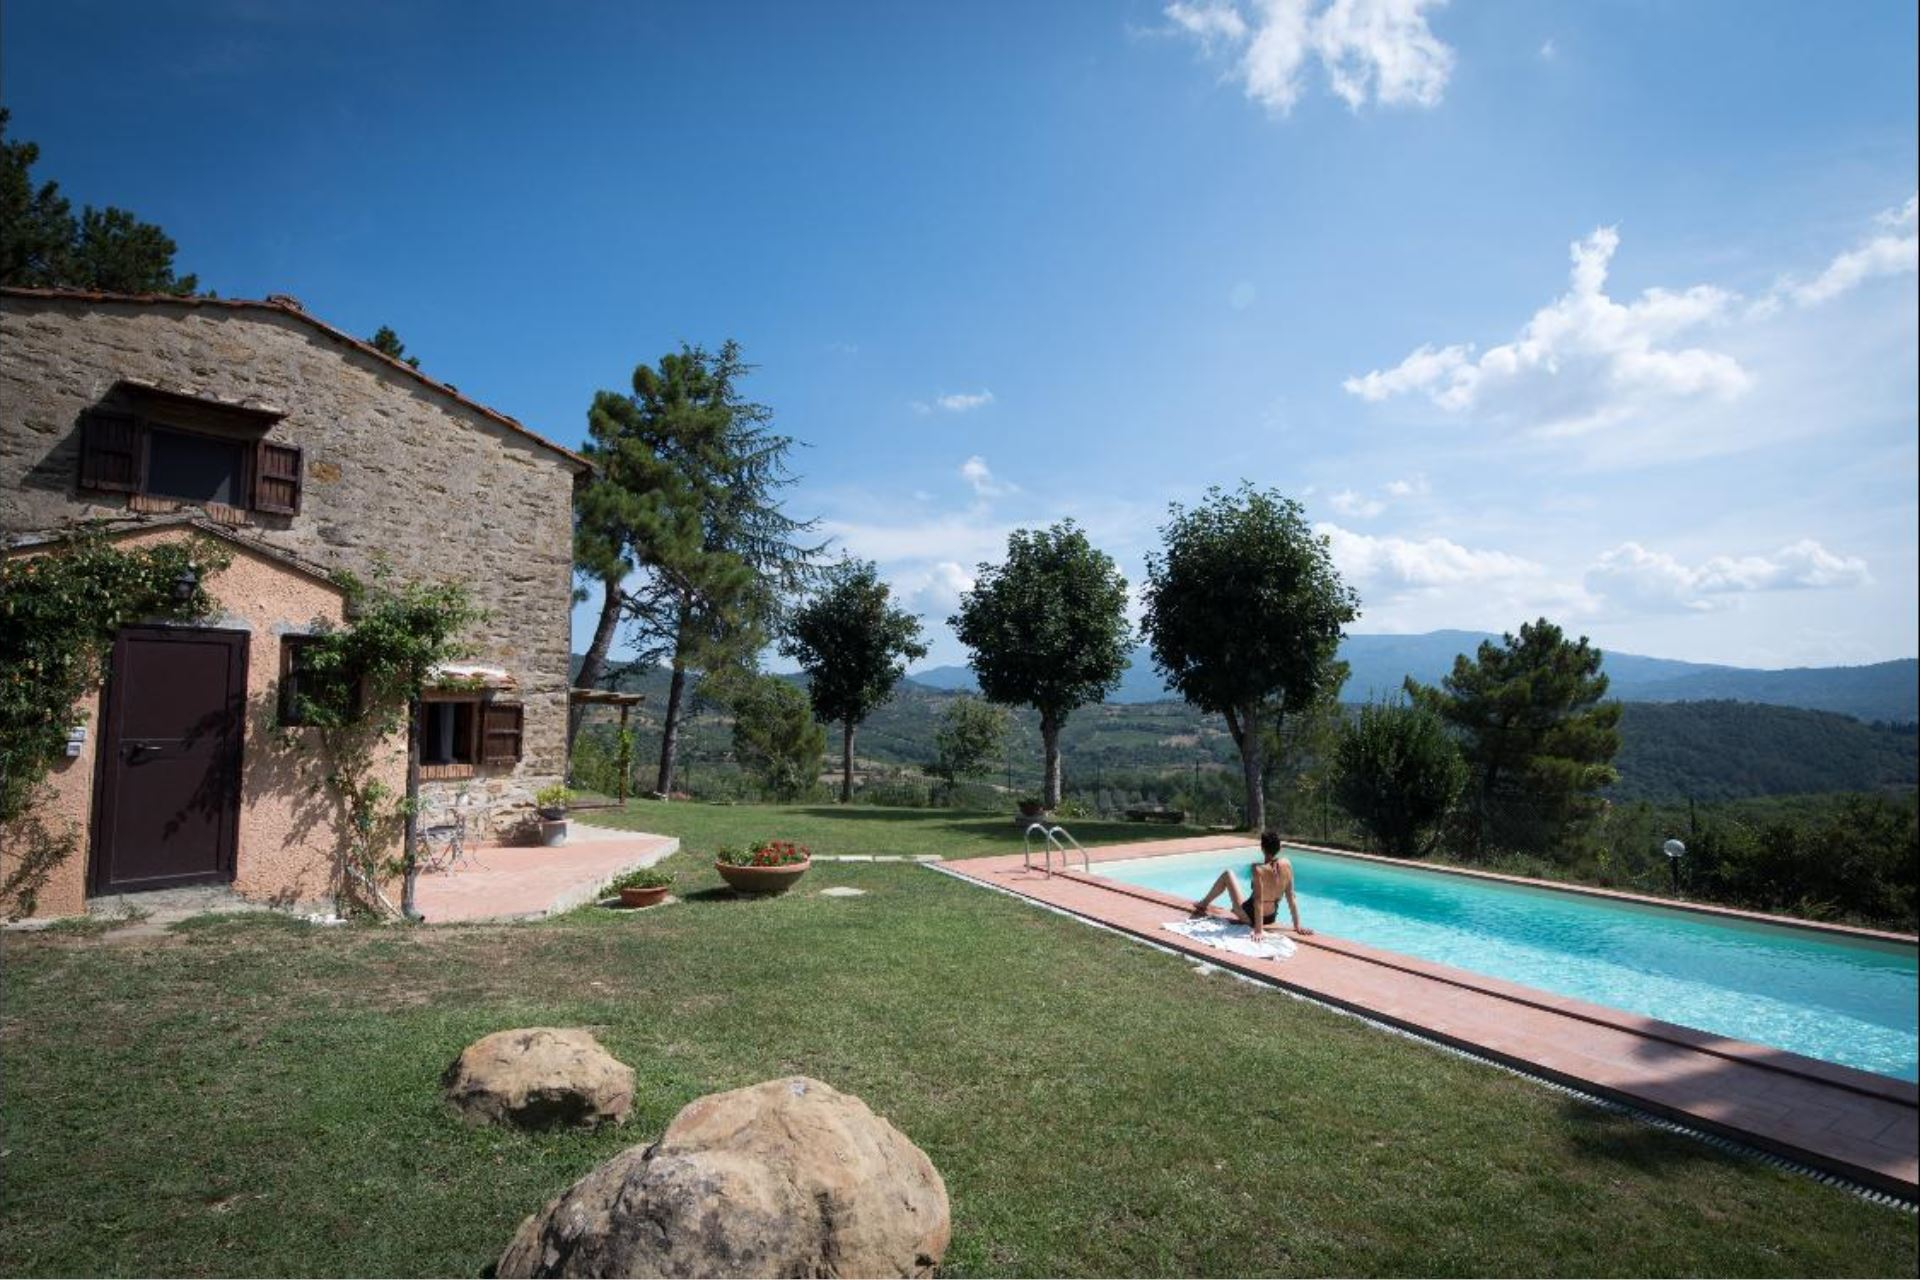 villa 2 bedrooms sleep 6 private pool tuscany